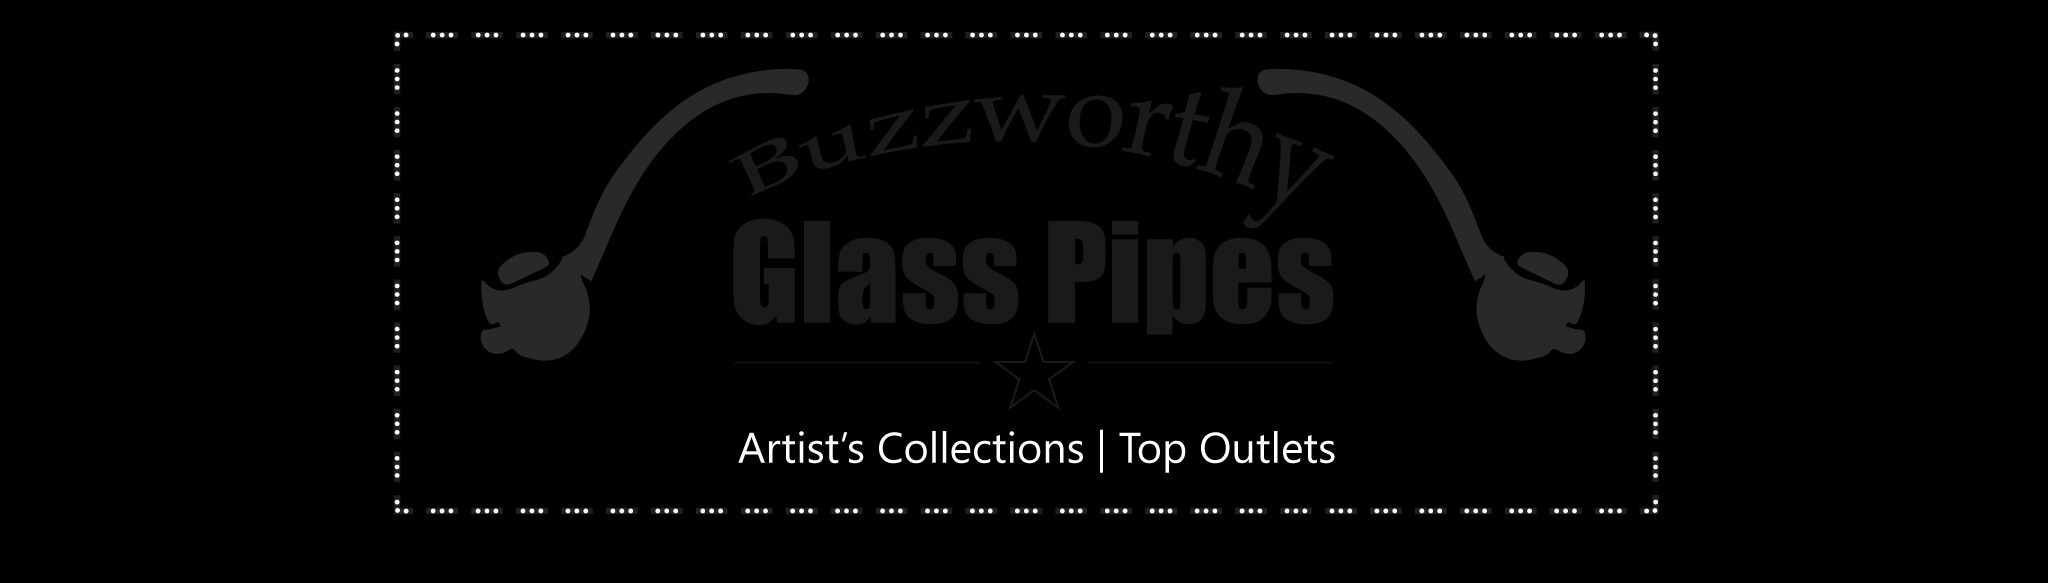 Buzzworthy Glass Pipes - Artists (@buzzworthyglasspipes) Cover Image